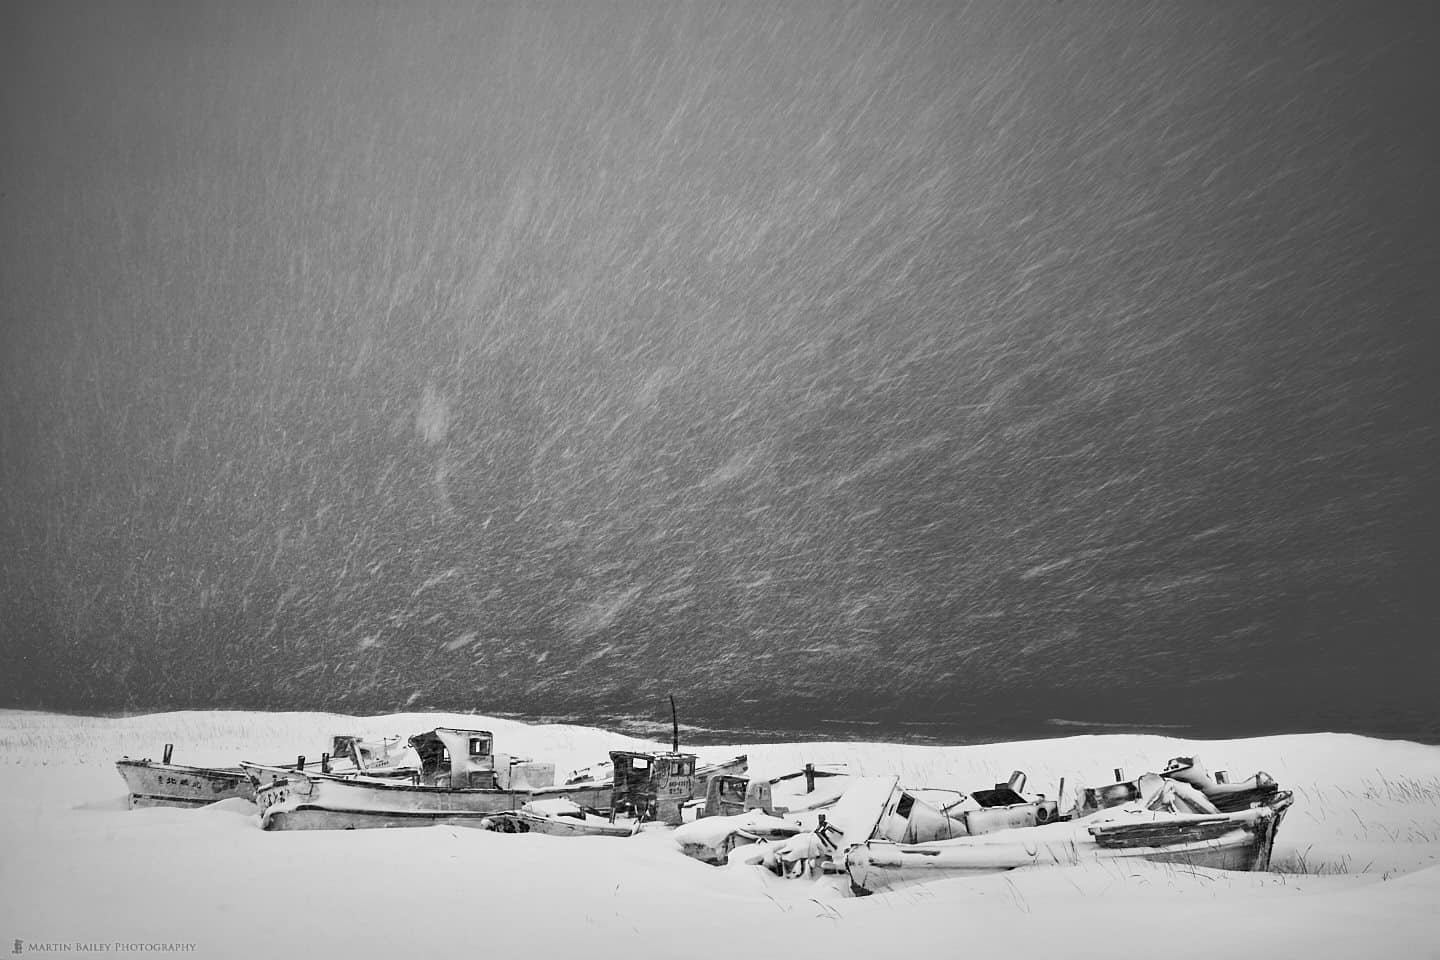 Boat Graveyard in Driving Snow